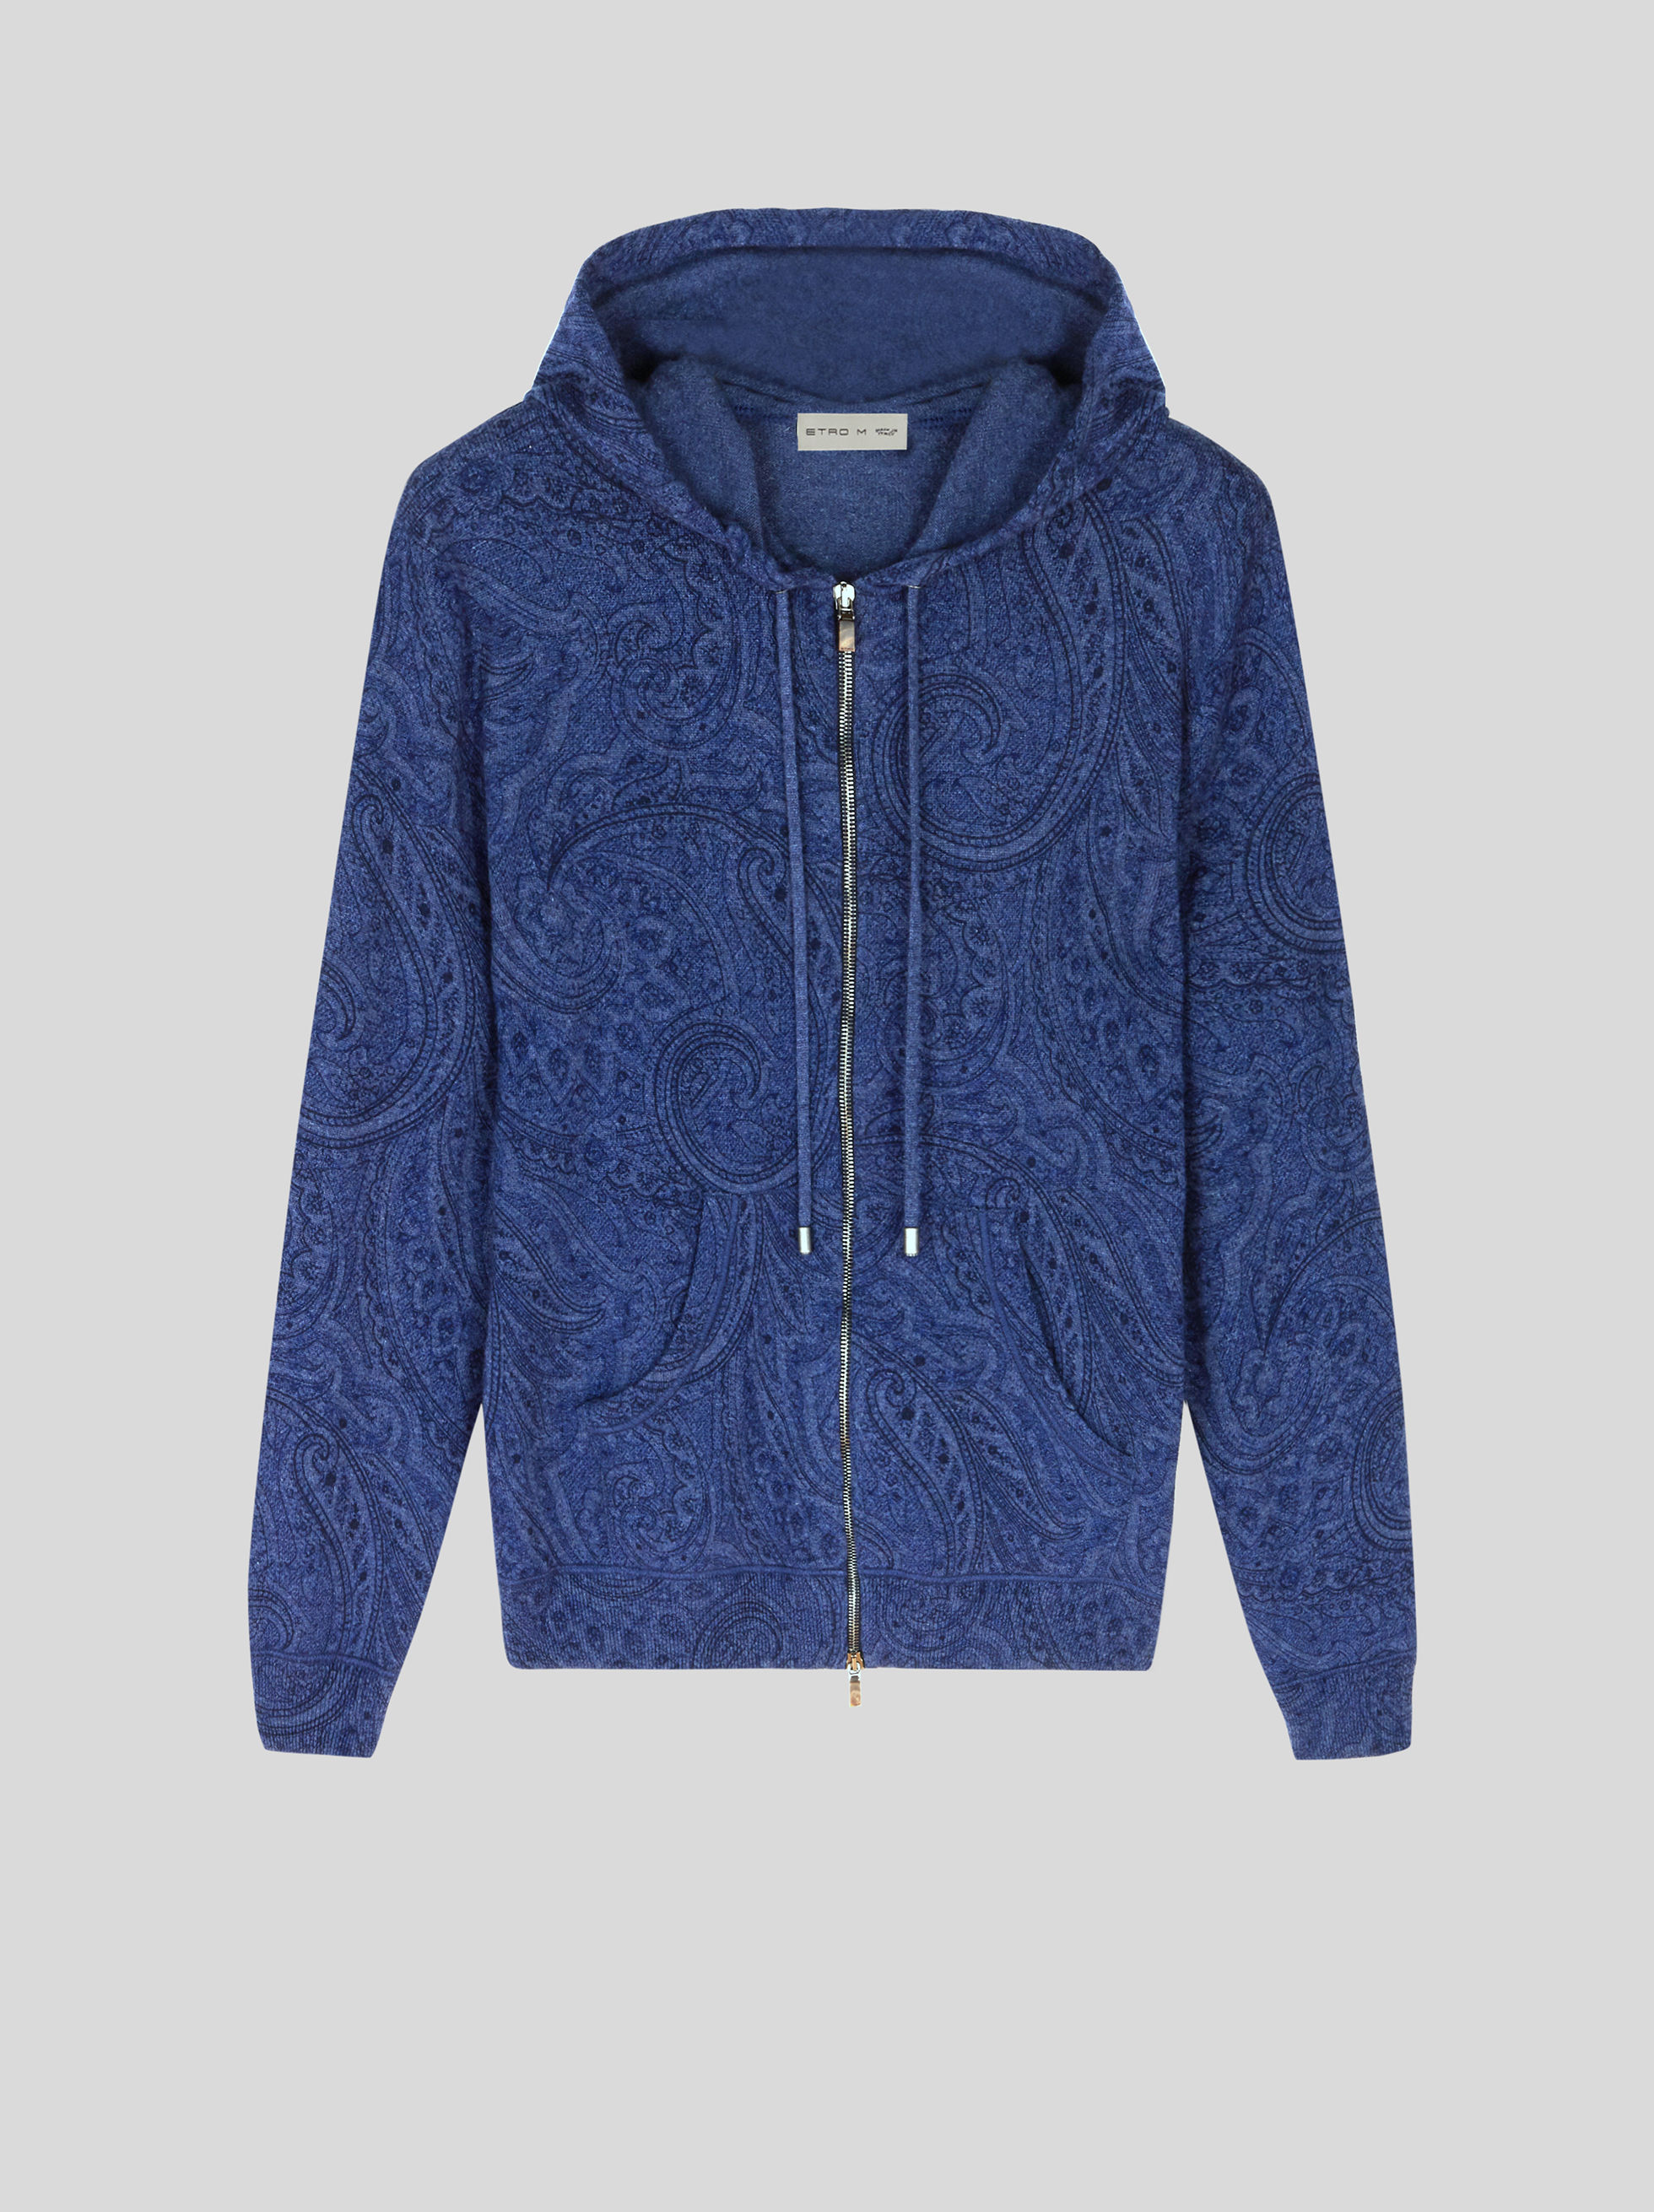 CASHMERE SWEATSHIRT WITH PAISLEY PRINT